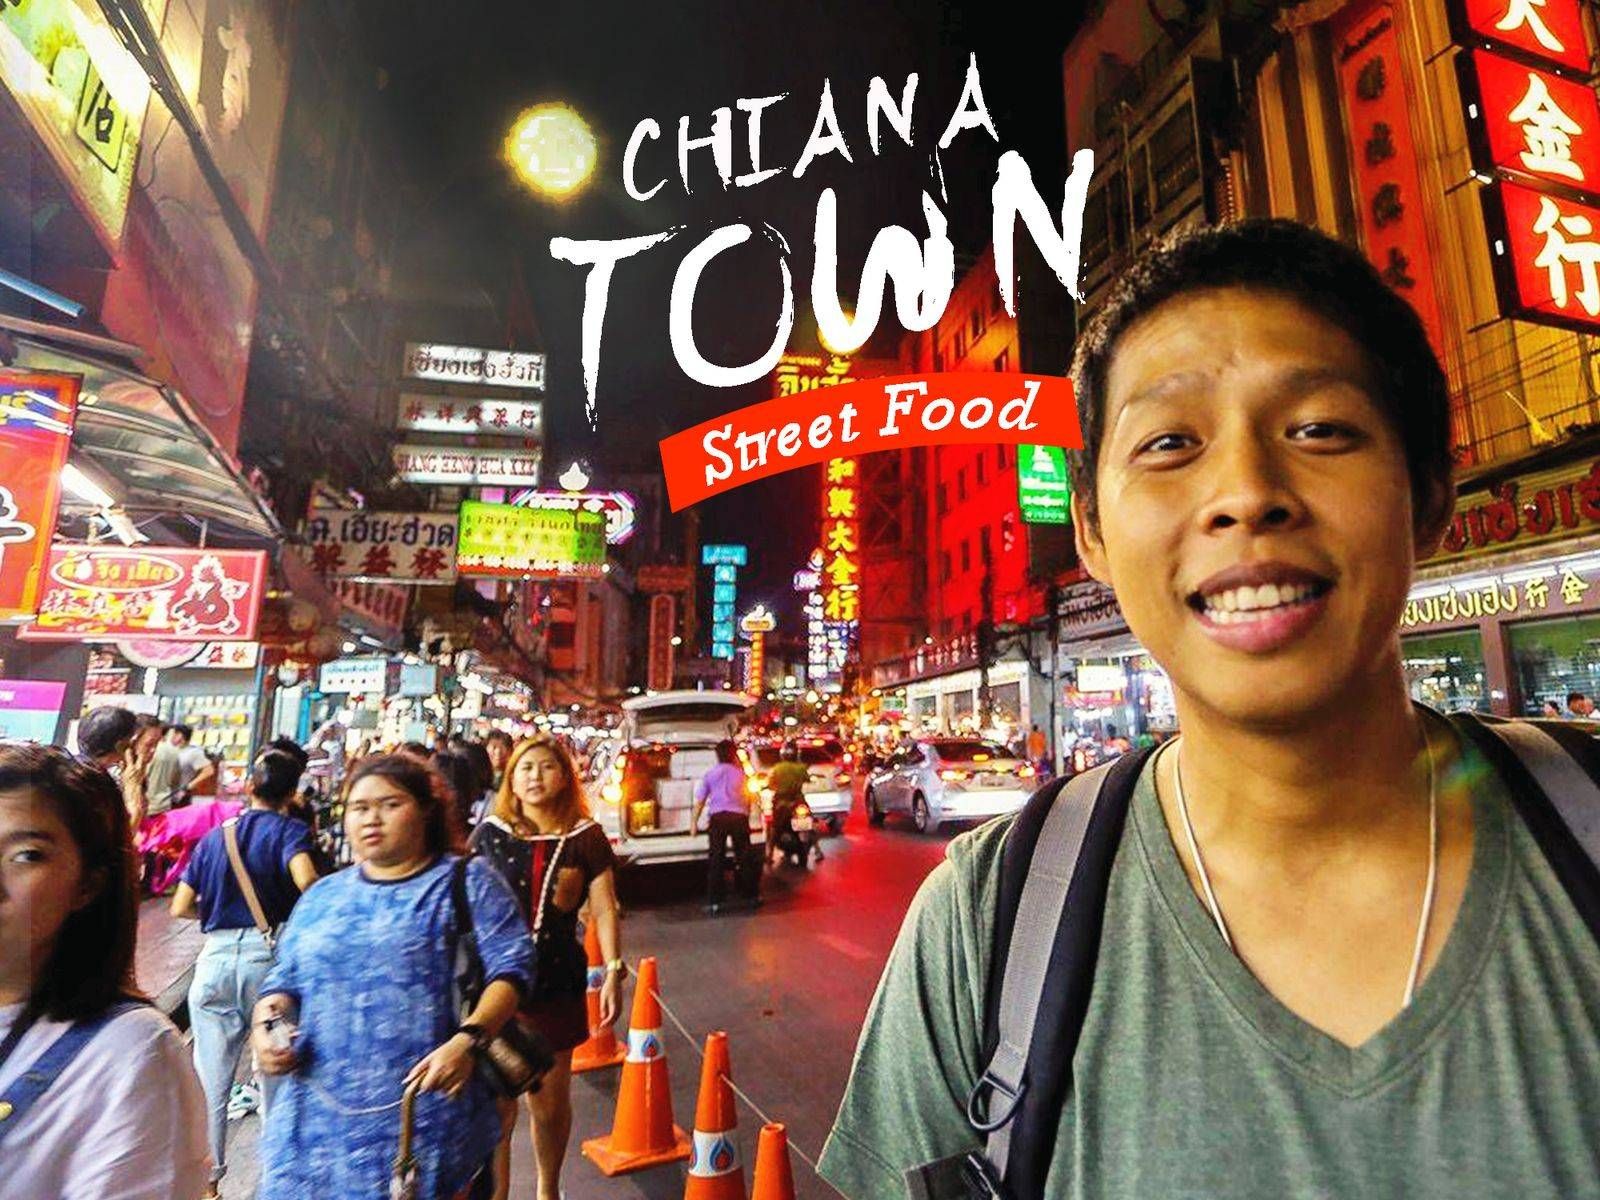 Follow the street food trail of Chinatown